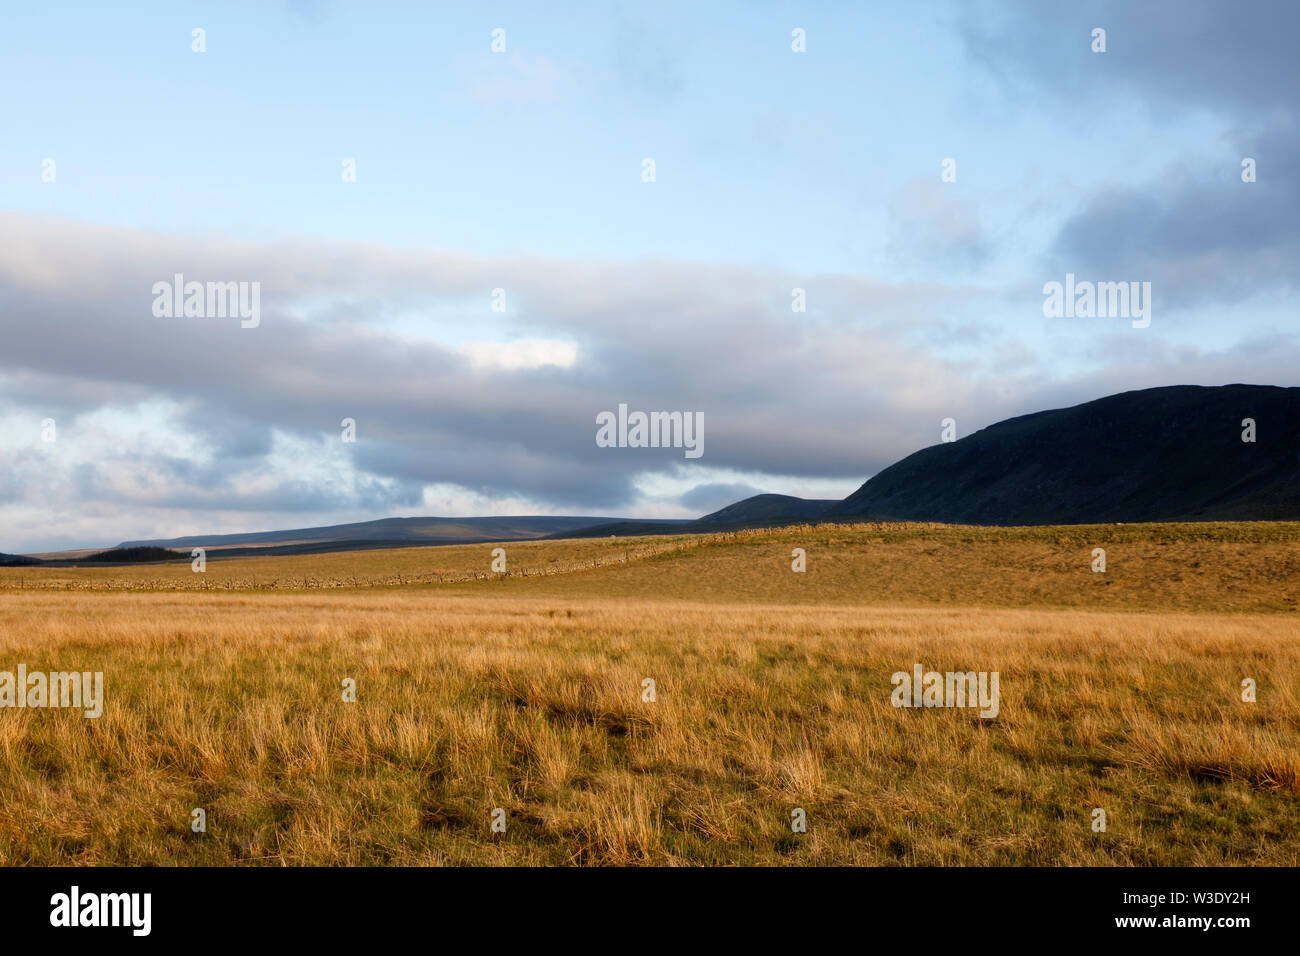 Cronkley Pasture, Upper Teesdale, County Durham, England, UK - Stock Image